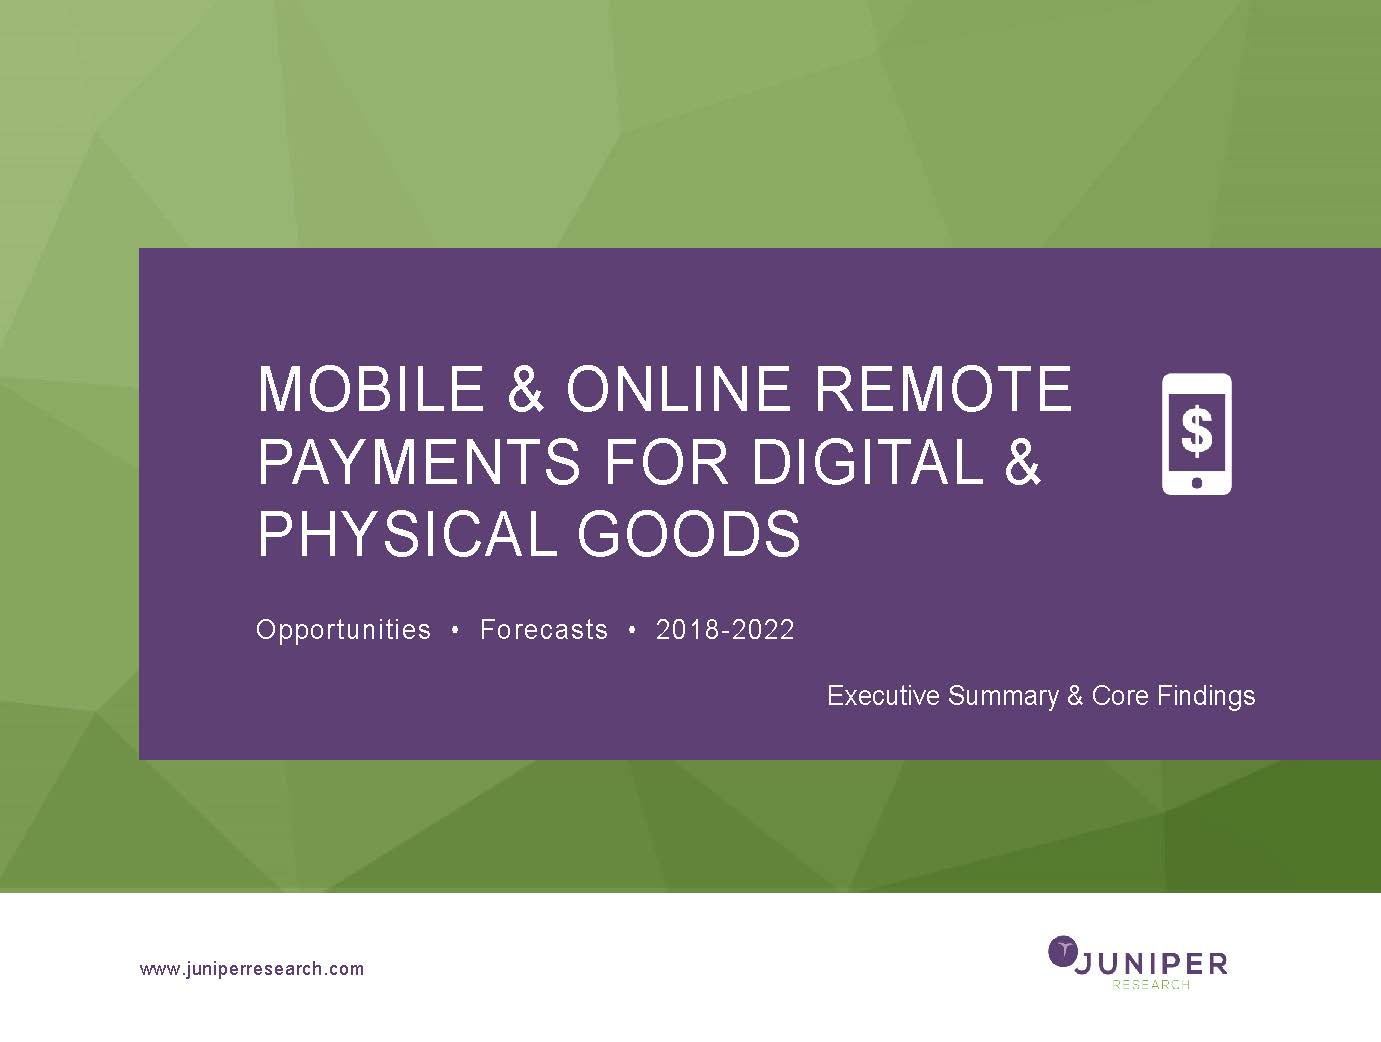 Mobile & Online Remote Payments for Digital & Physical Goods: Executive Summary 2018-2022